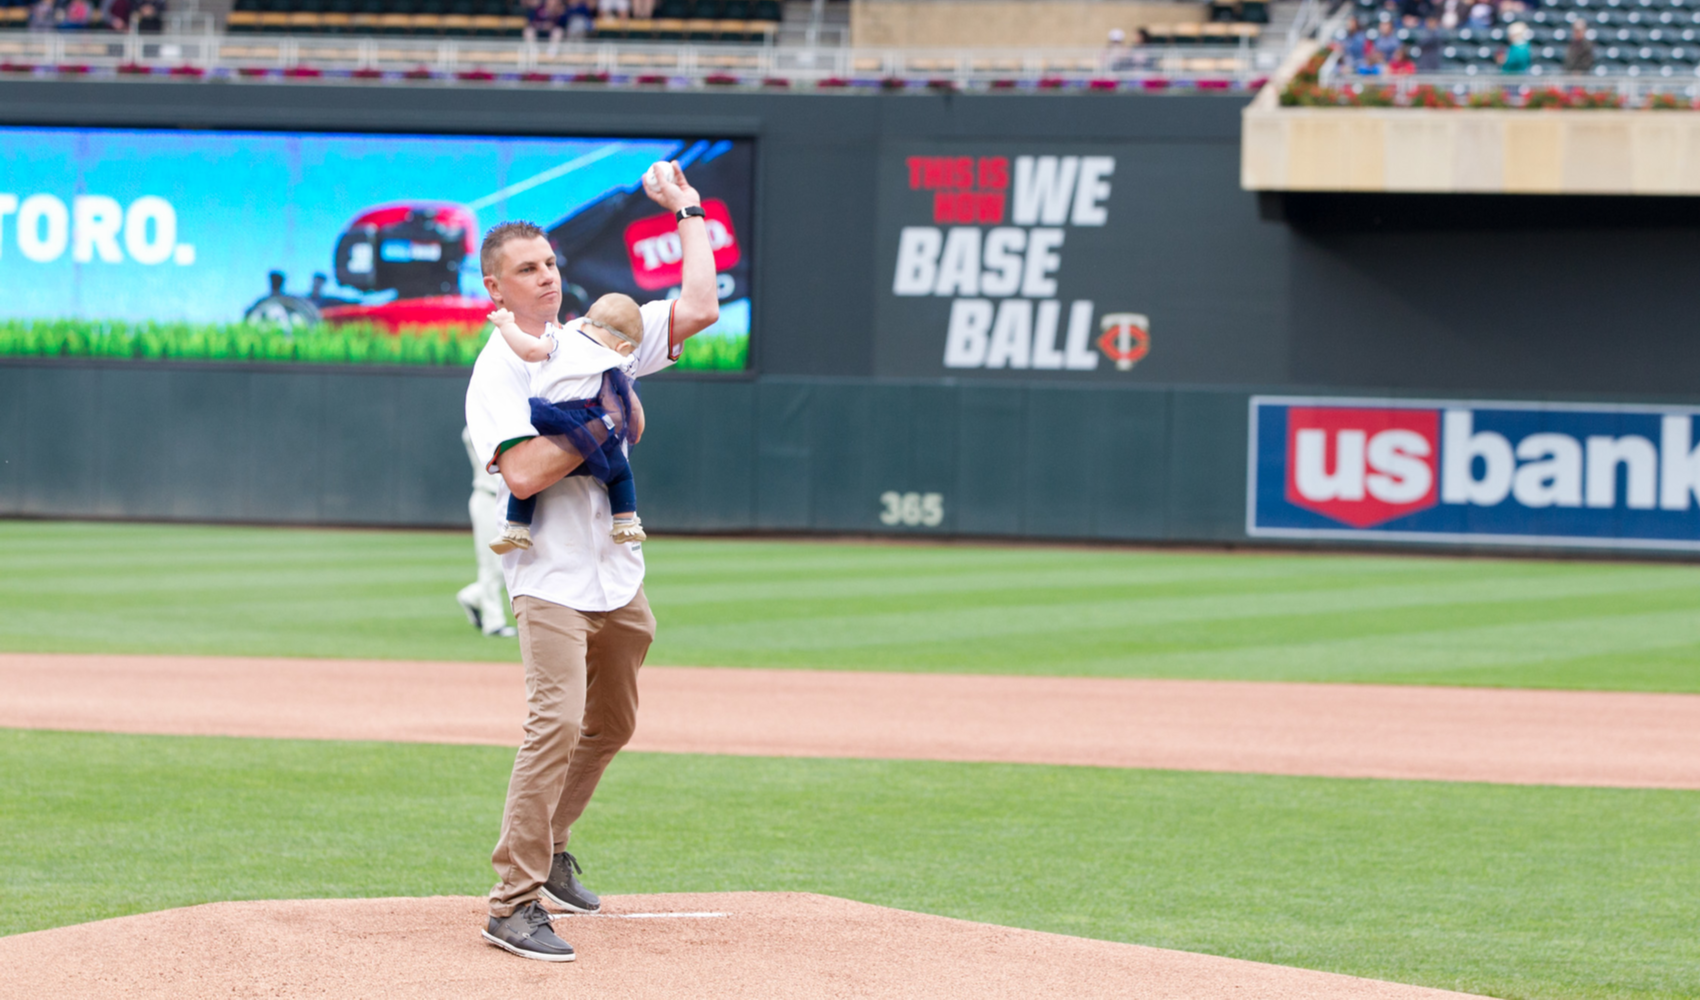 Nathan_Newlands_Throws_First_Pitch_At_MN_Twins_Game_2